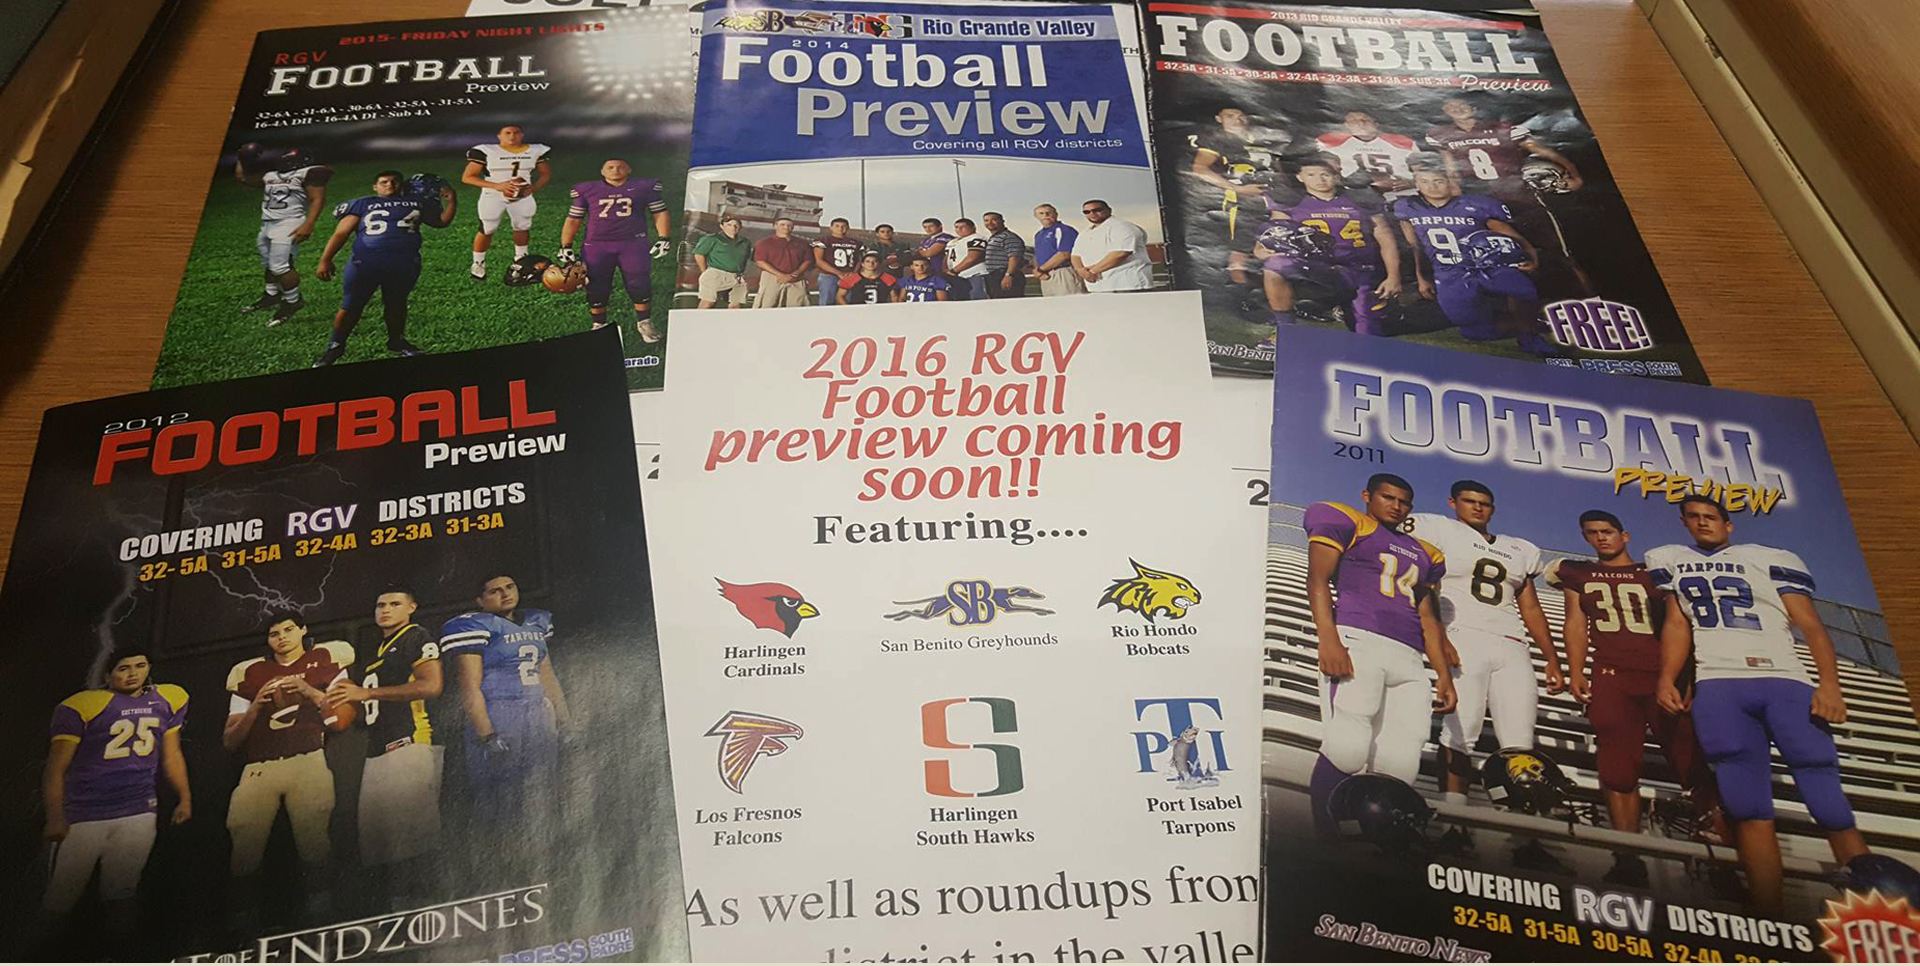 2016 RGV Football preview coming Soon…